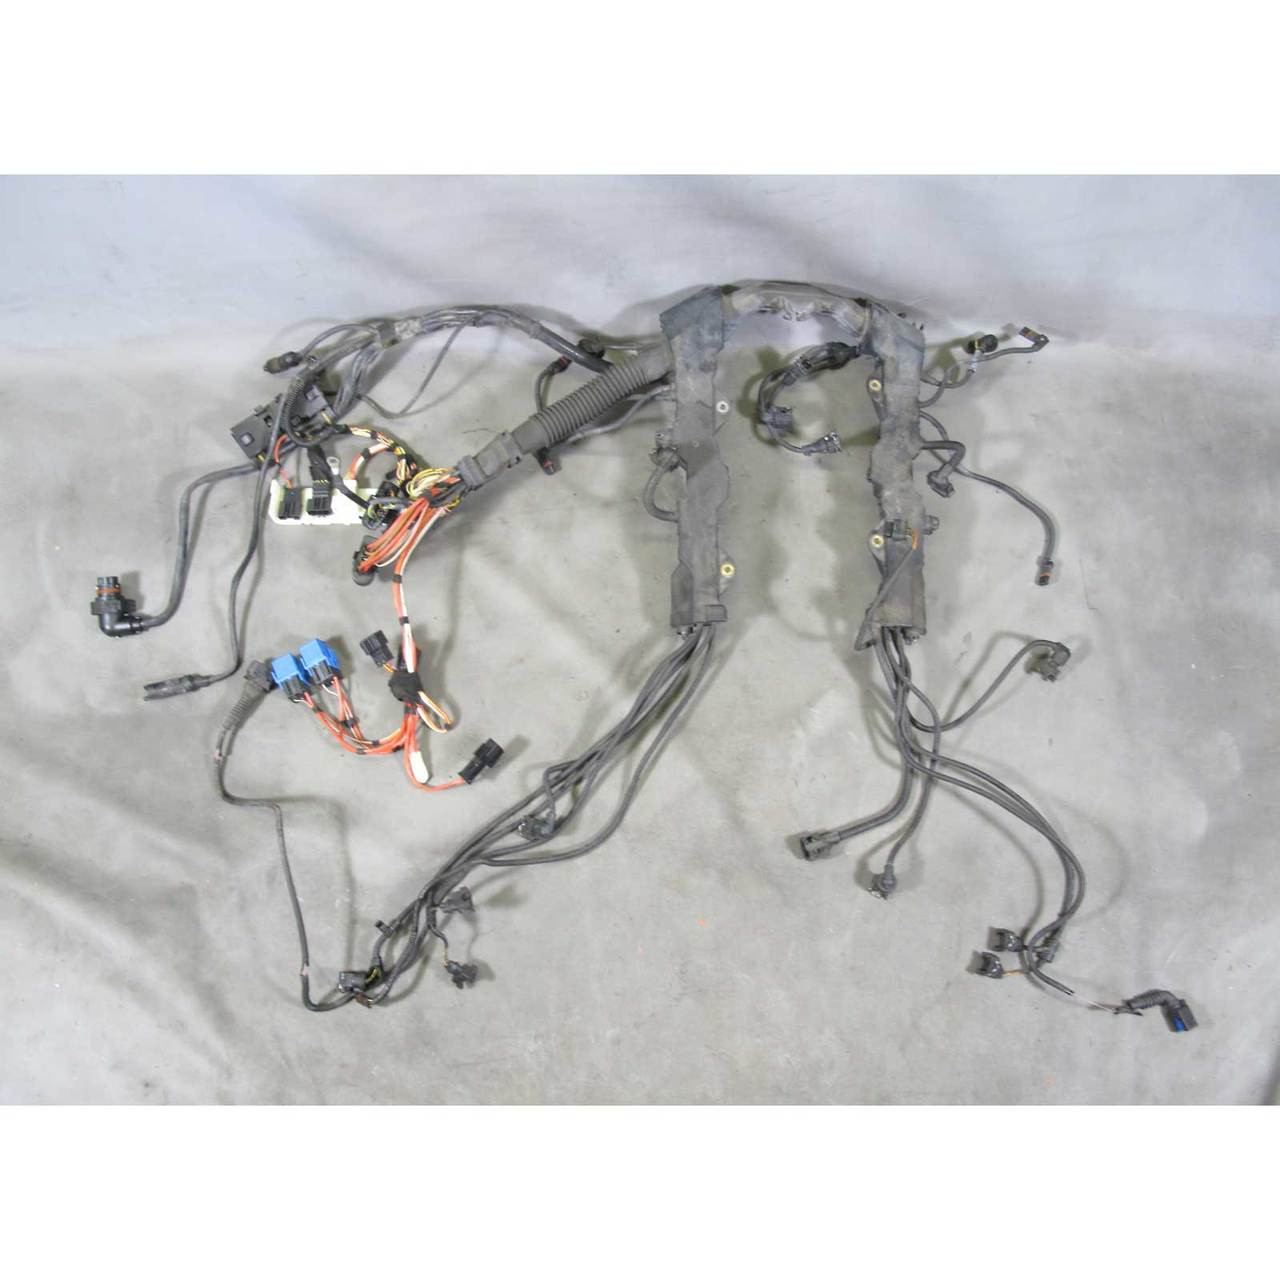 Bmw E53 Wiring Coil Harness  Ford 7 3 Injector Harness, Bmw Fuses